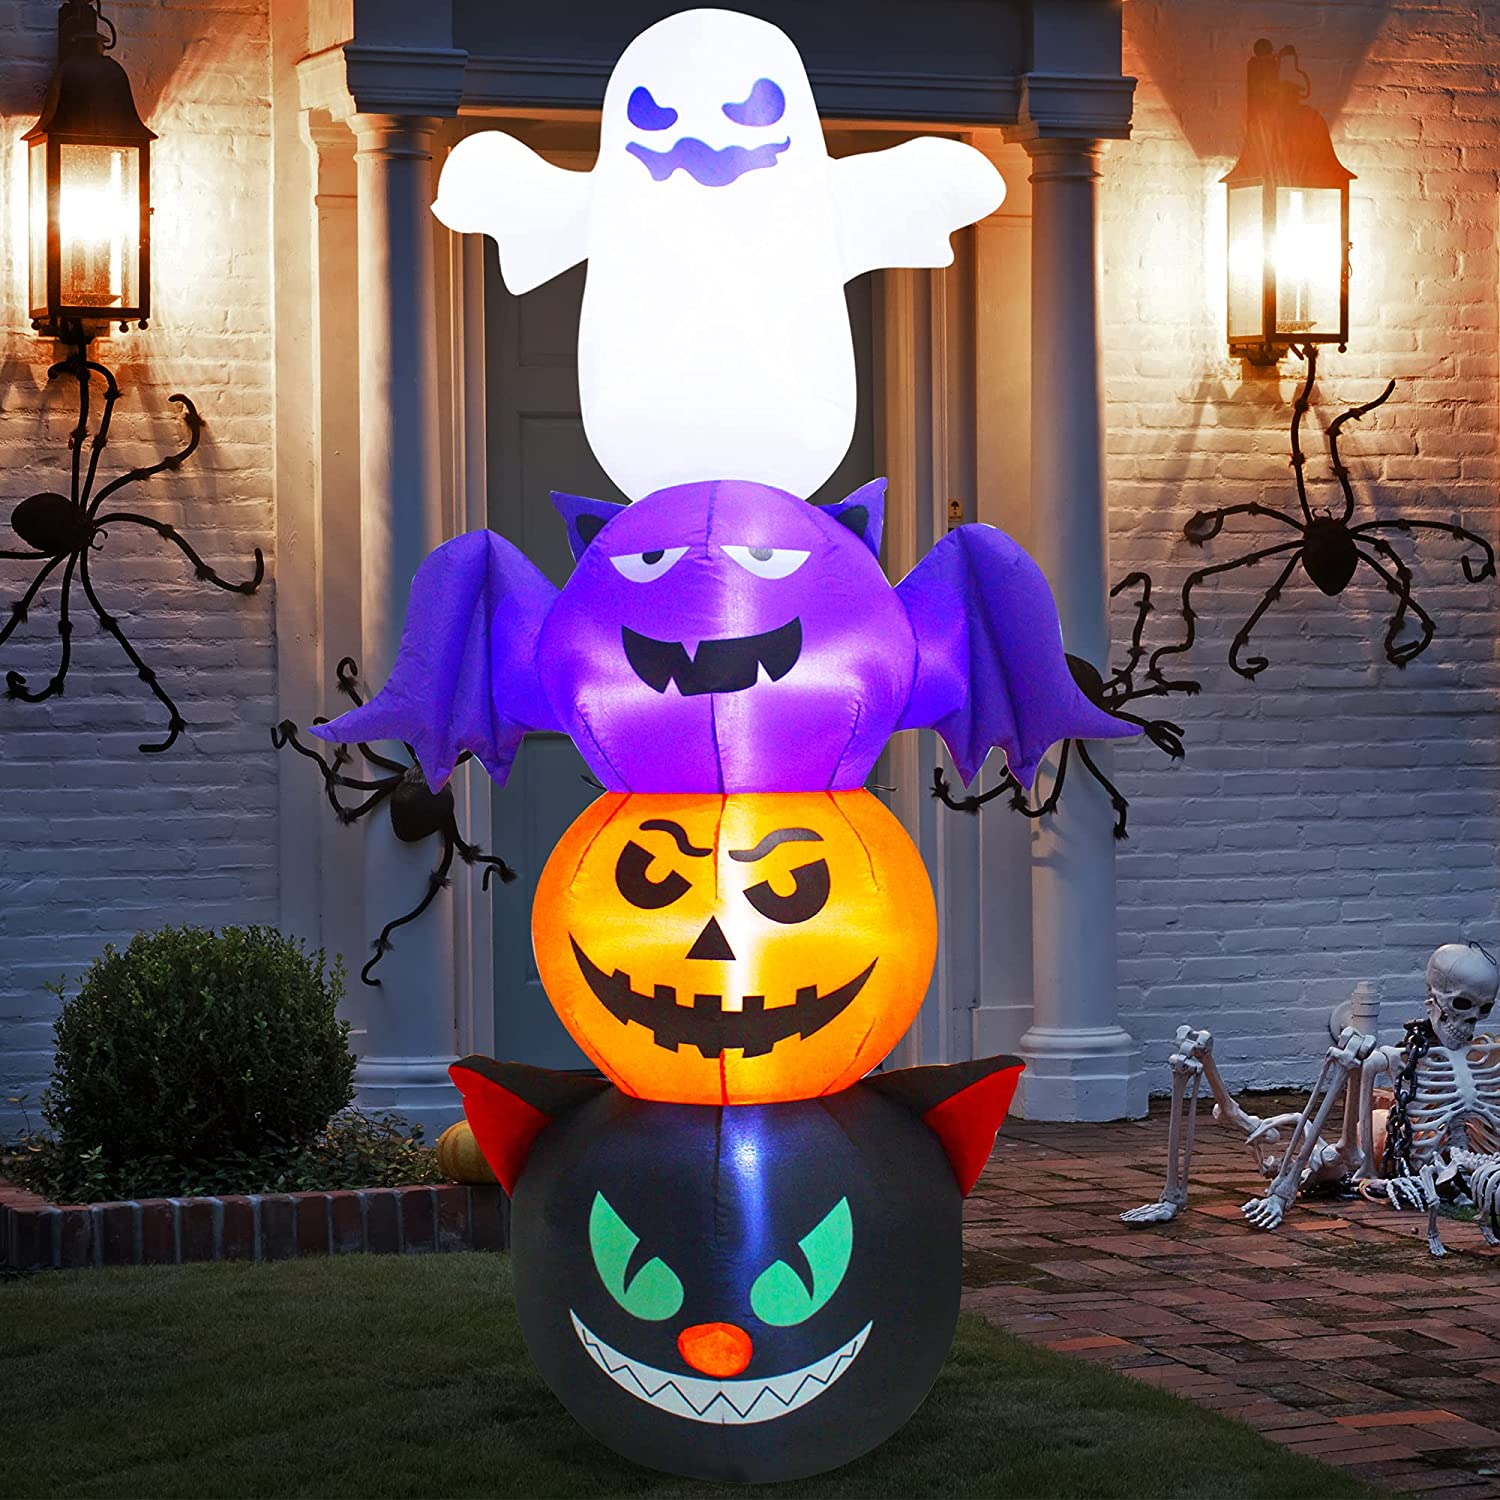 Spring new work SUNYPLAY 6FT Halloween Inflatable Ghost with Max 51% OFF Bat Pumpkin Cat Ha